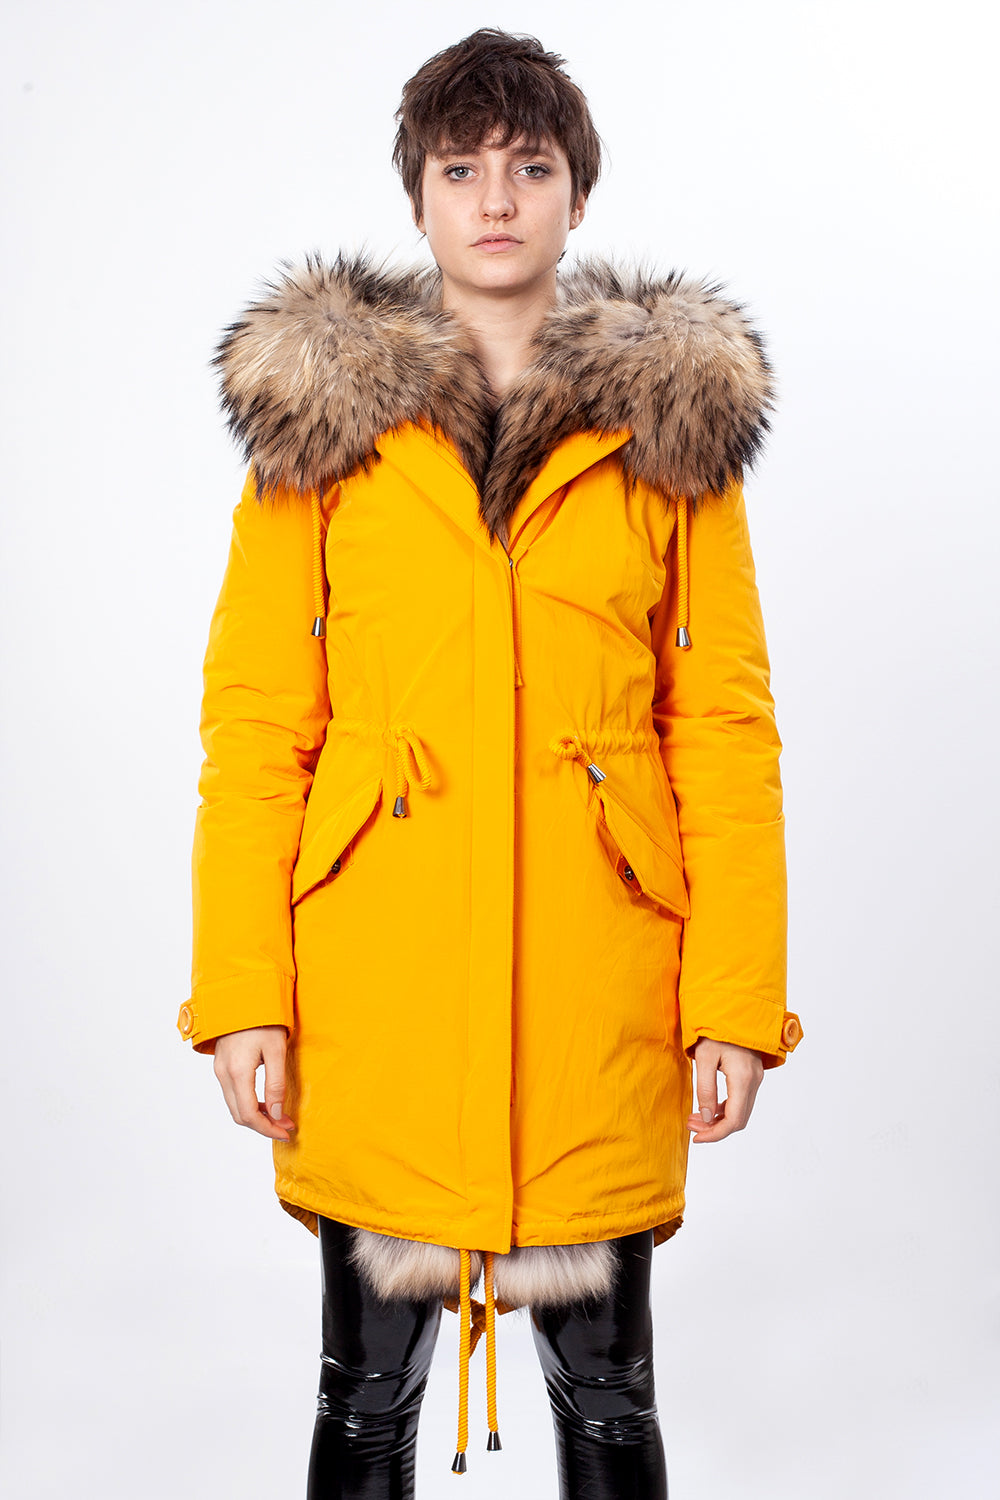 Yellow Midi Parka Main Fabric is Waterproof / Raincoat Fabric With Finnraccoon